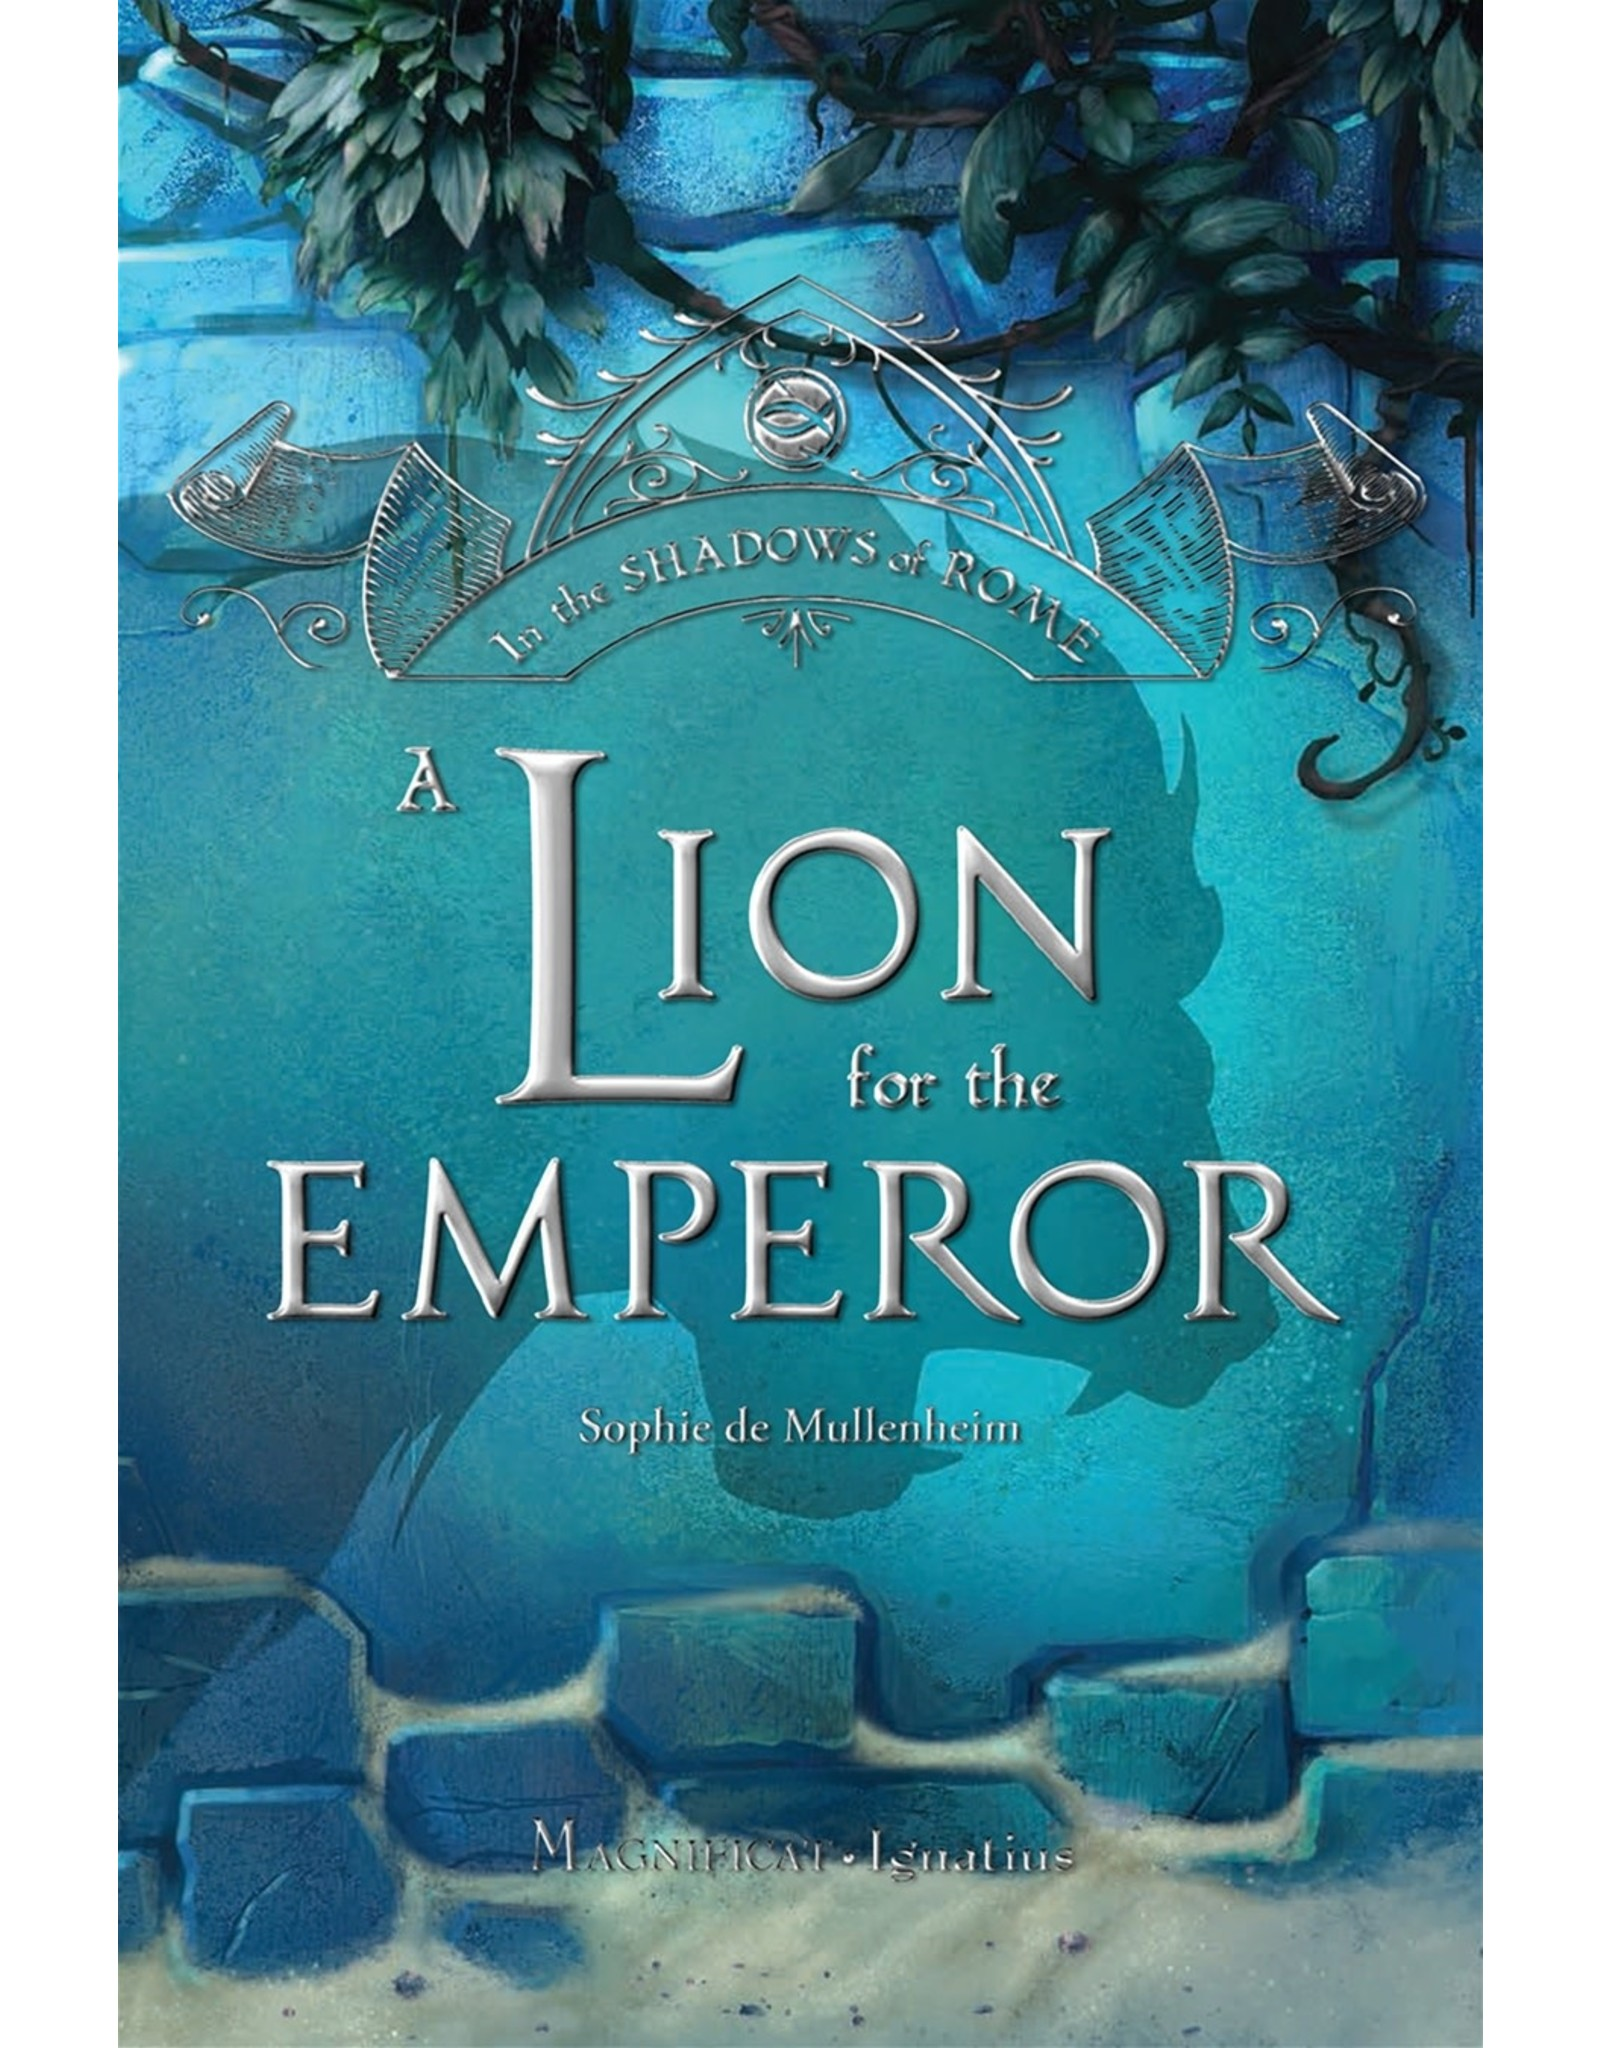 A Lion for the Emperor